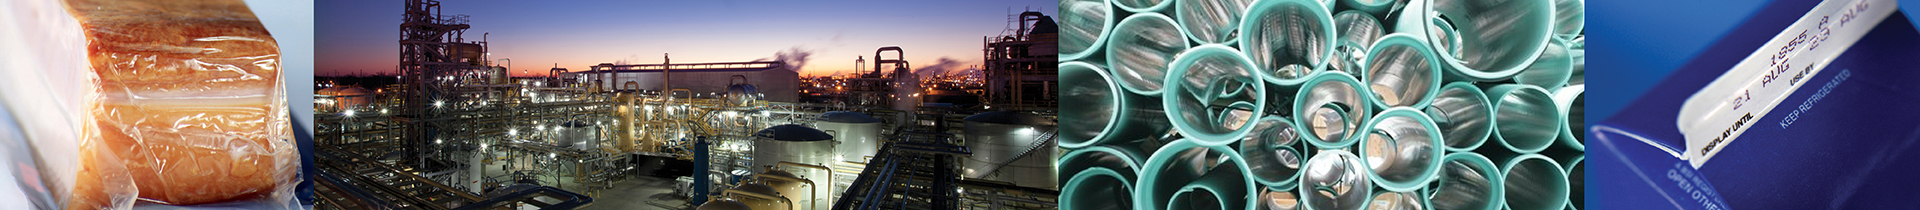 Westlake Chemical Partners LP Increases Capacity of Revolving Credit Facility